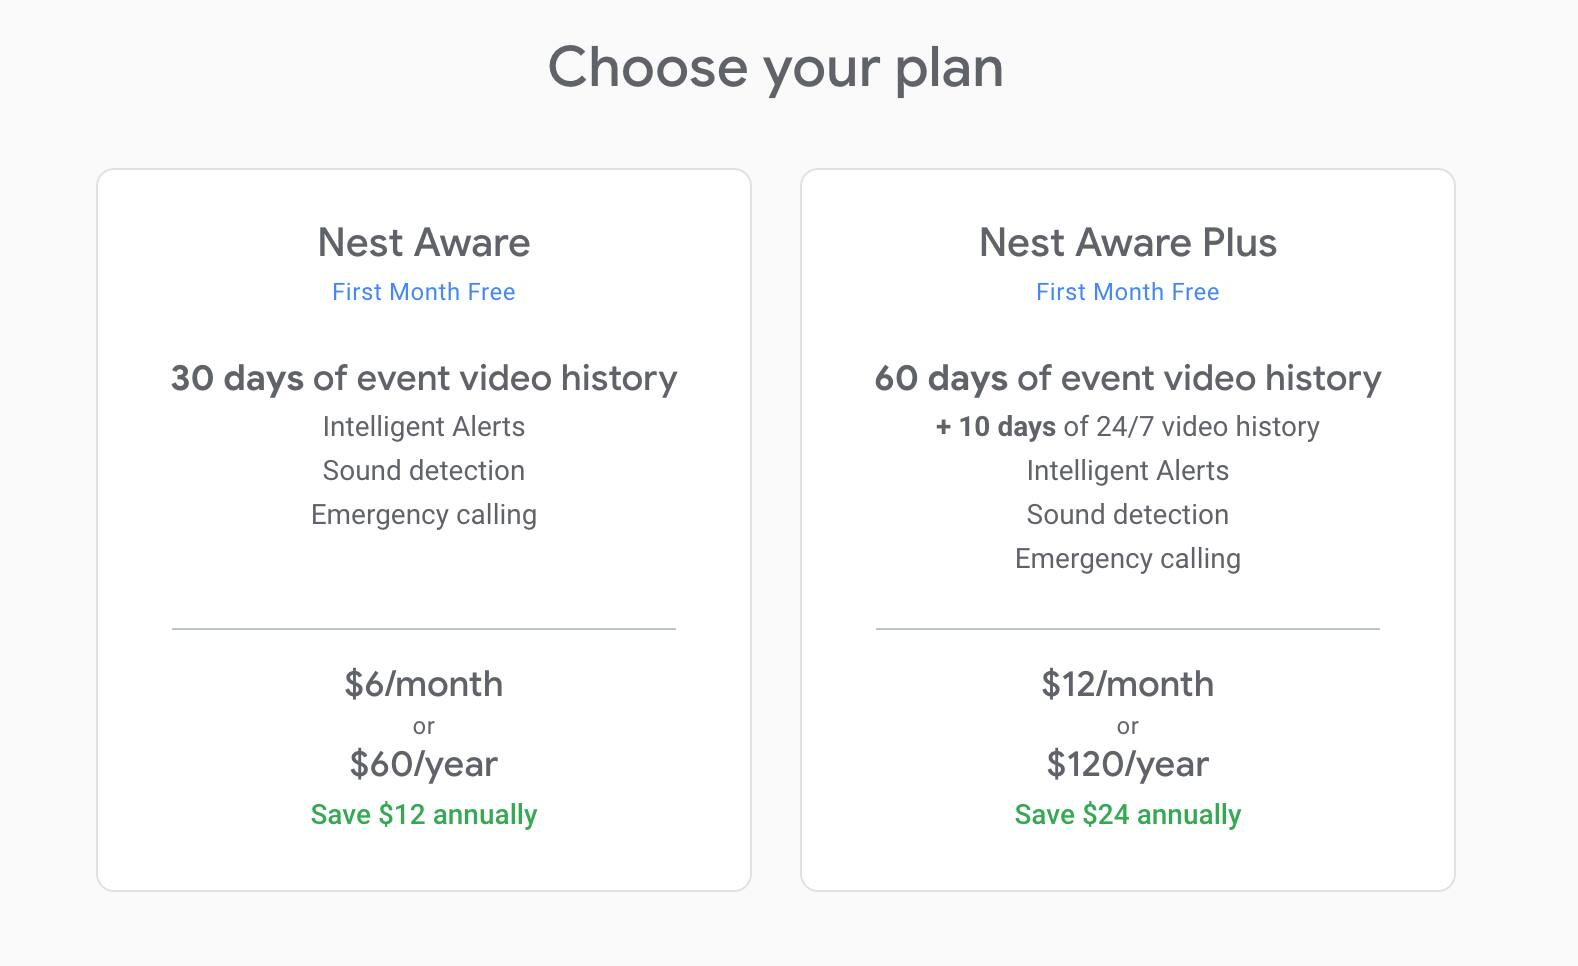 Nest Aware for All Devices (First month free)